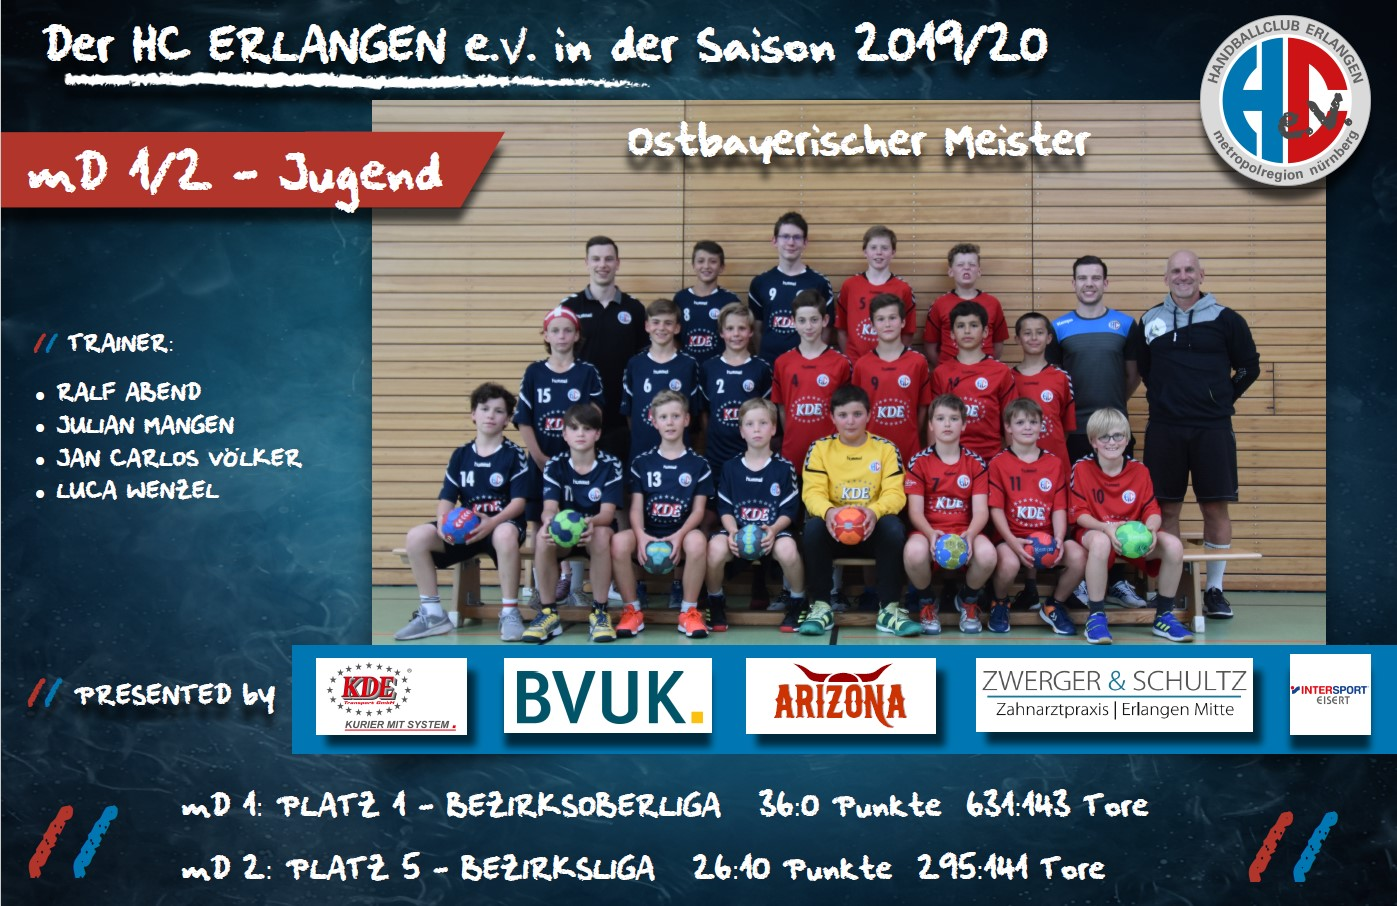 Unsere mD